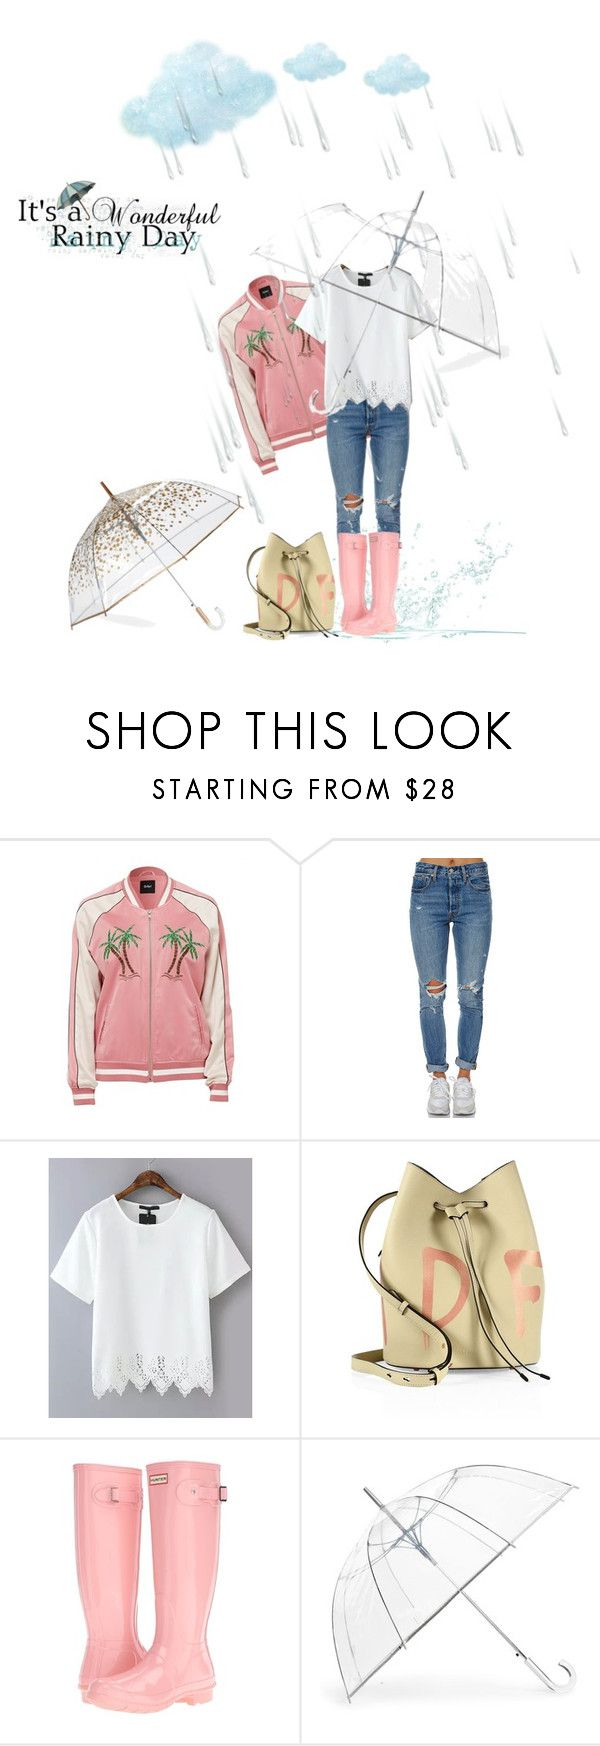 """""""Spring Rain"""" by catsanddogs-563 ❤ liked on Polyvore featuring Levi's, Kendall + Kylie, Hunter, ShedRain, Spring, rain and umbrellas"""